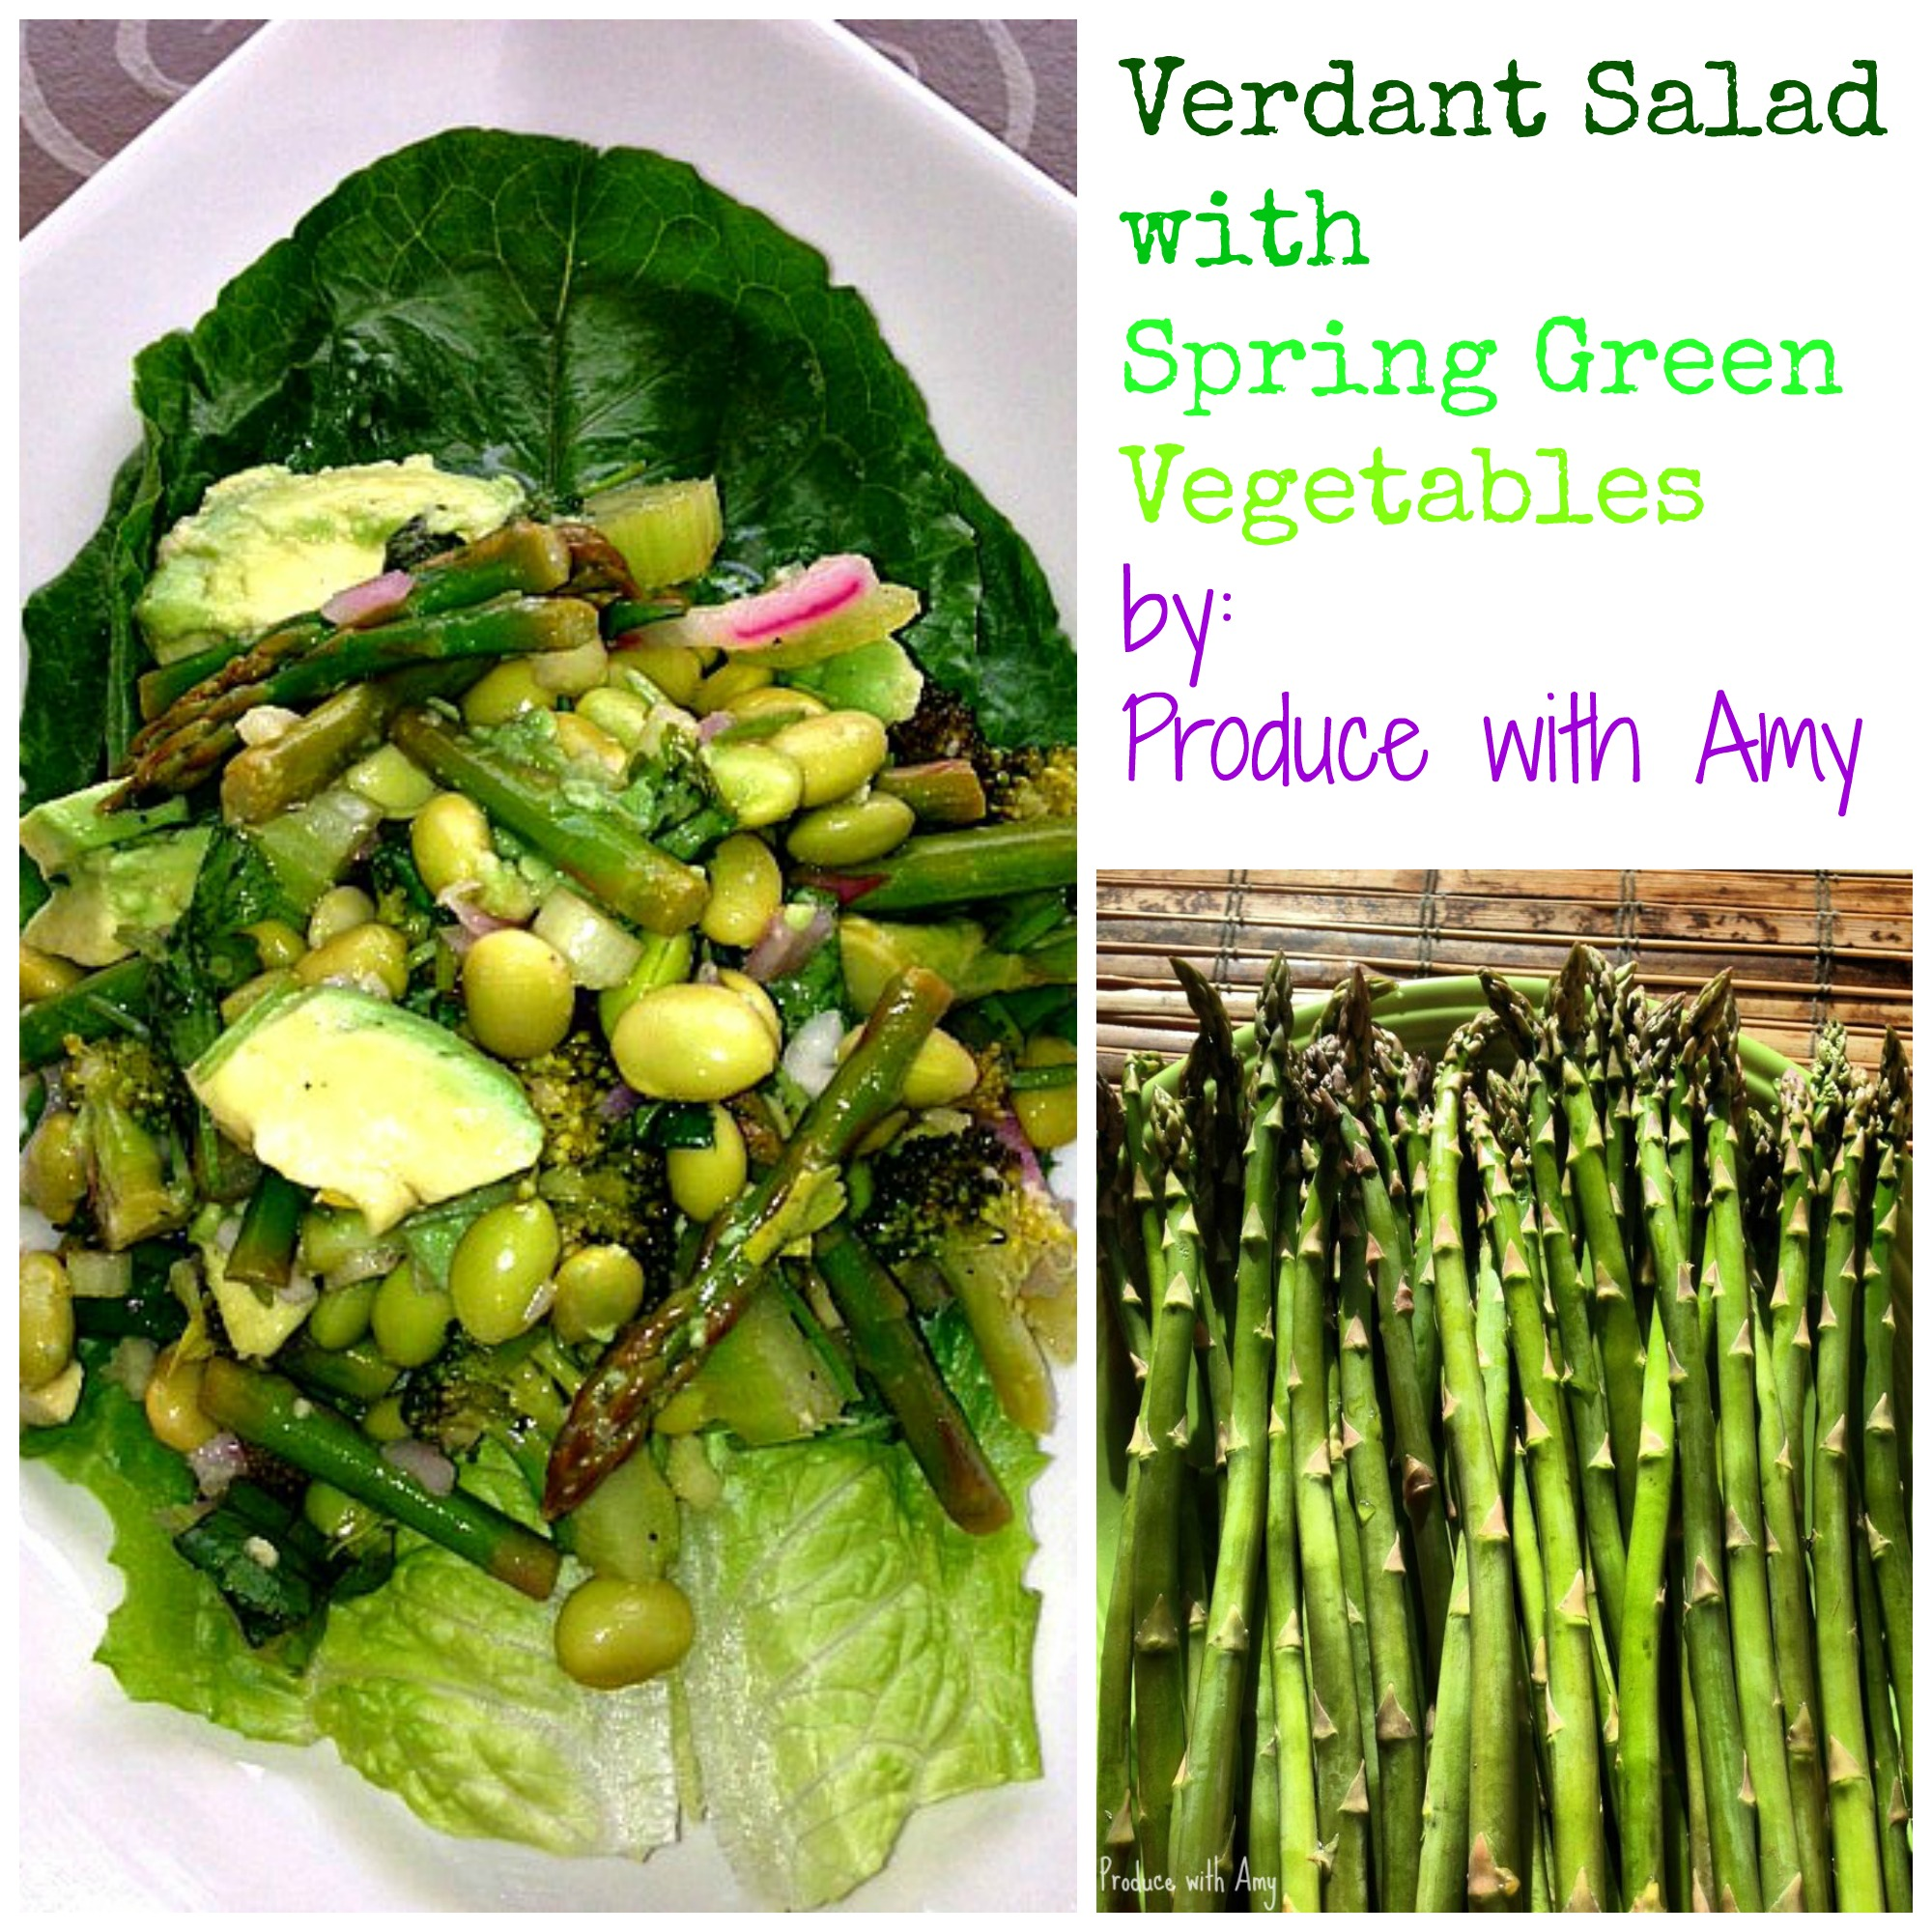 Verdant Salad with Spring Green Vegetables ~ Produce with Amy